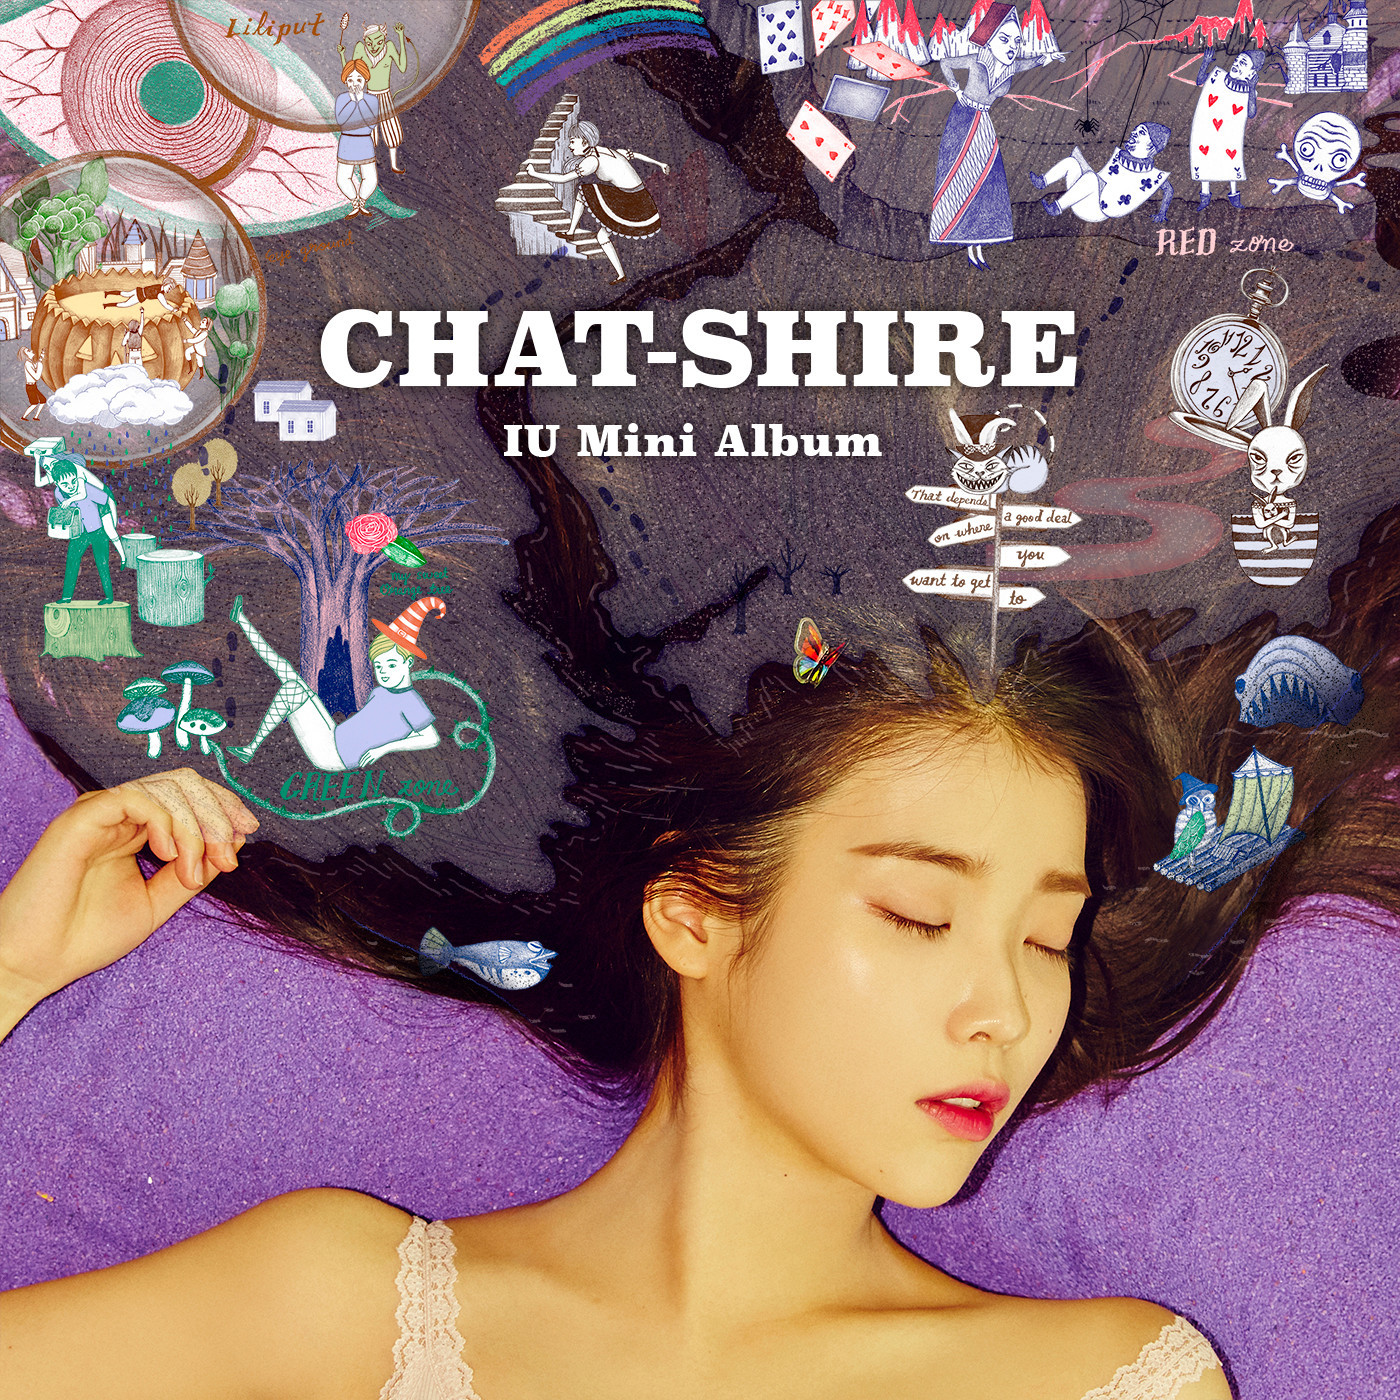 IU - Chat Shire (Full 4th Mini Album) - The Shower - Shoes K2Ost free mp3 download korean song kpop kdrama ost lyric 320 kbps